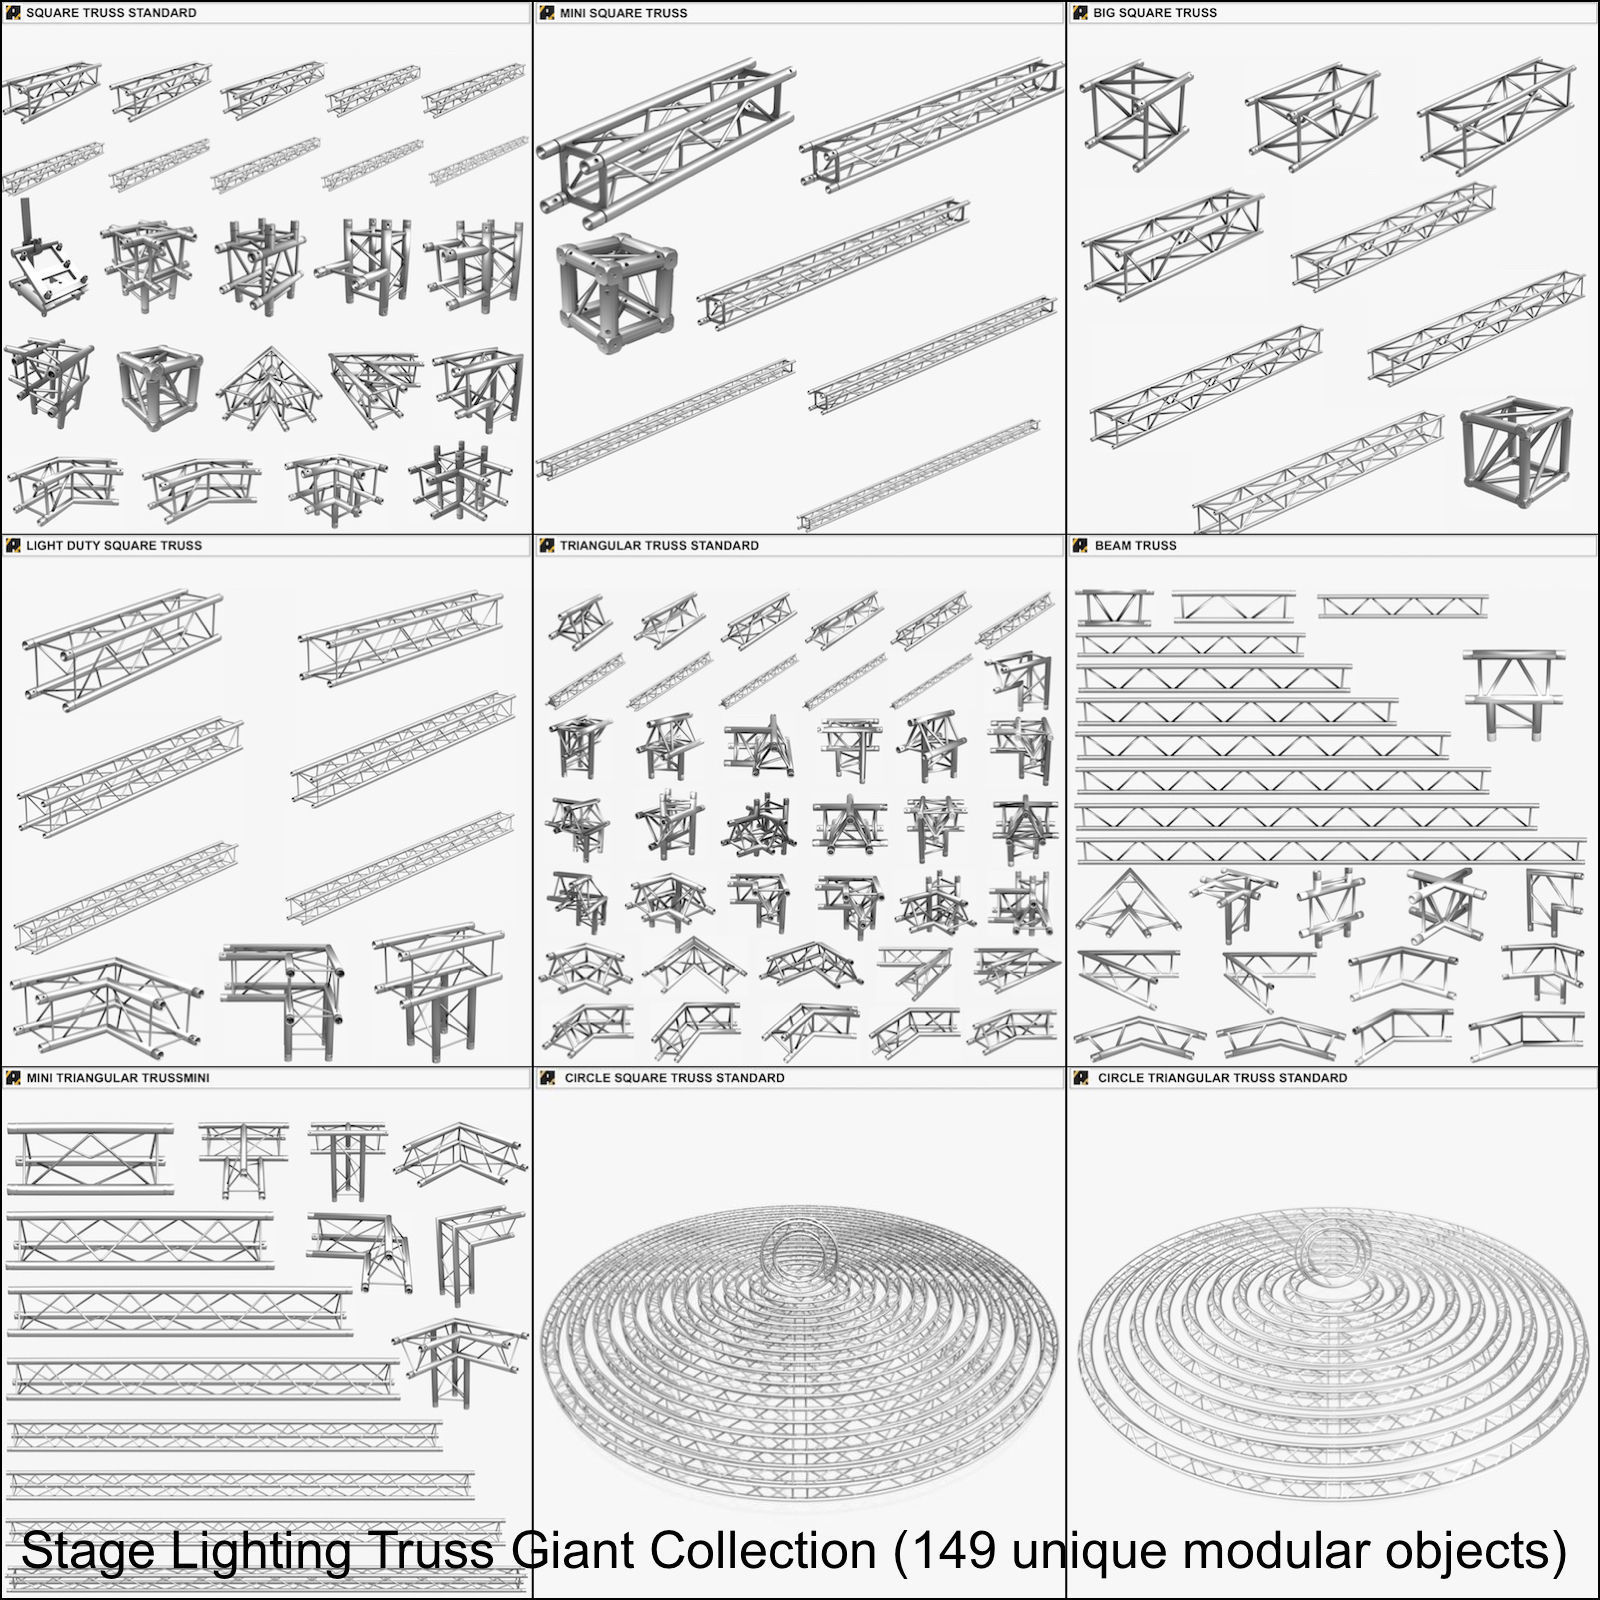 Stage Lighting Truss Giant Collection 149 unique modular objects